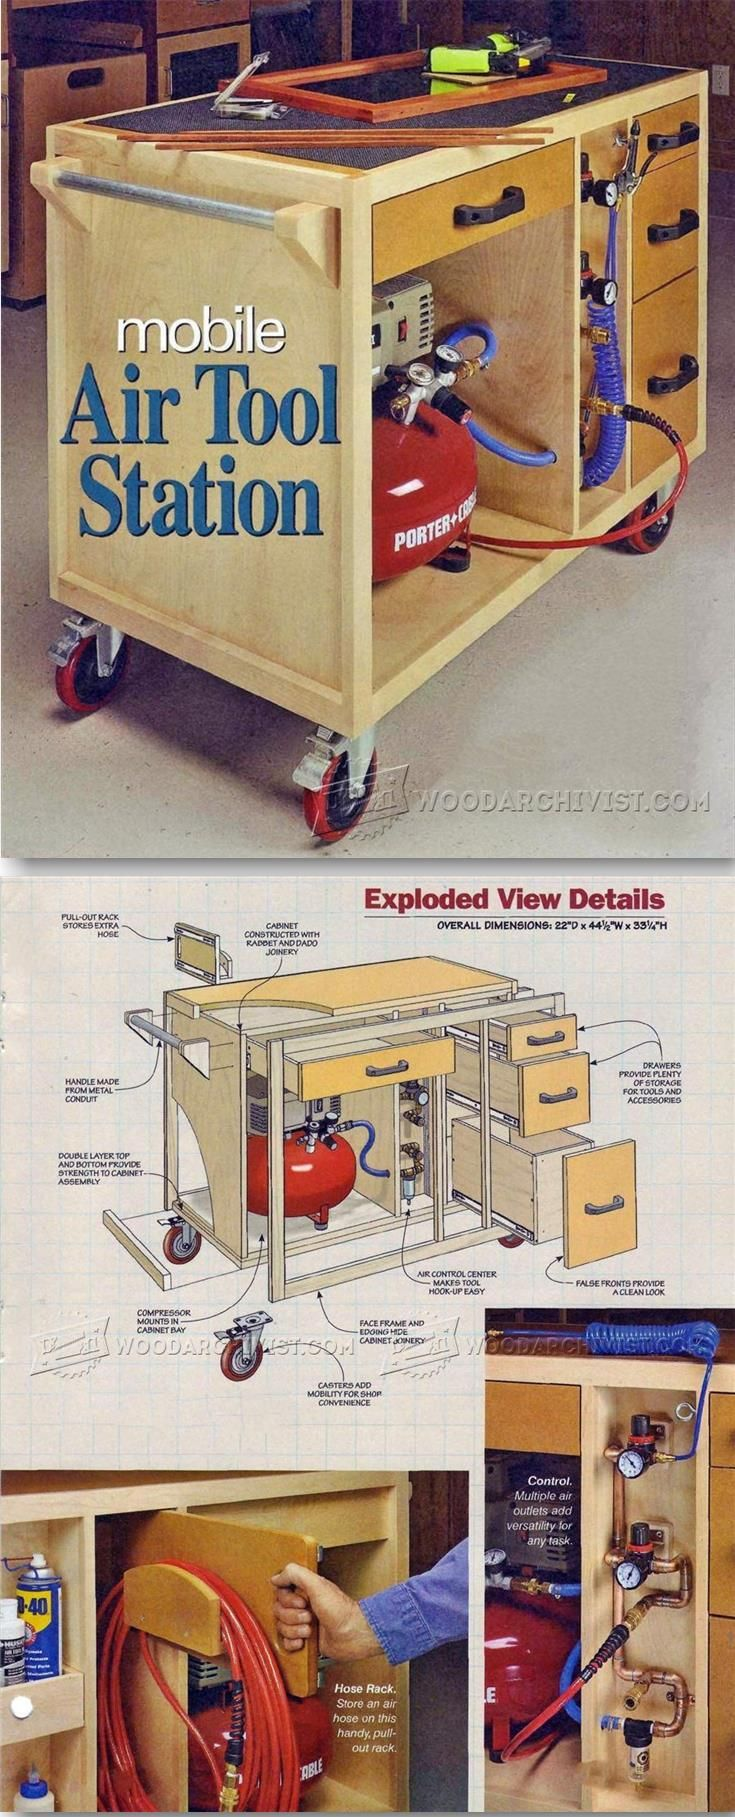 mobile air tool station - workshop solutions plans, tips and